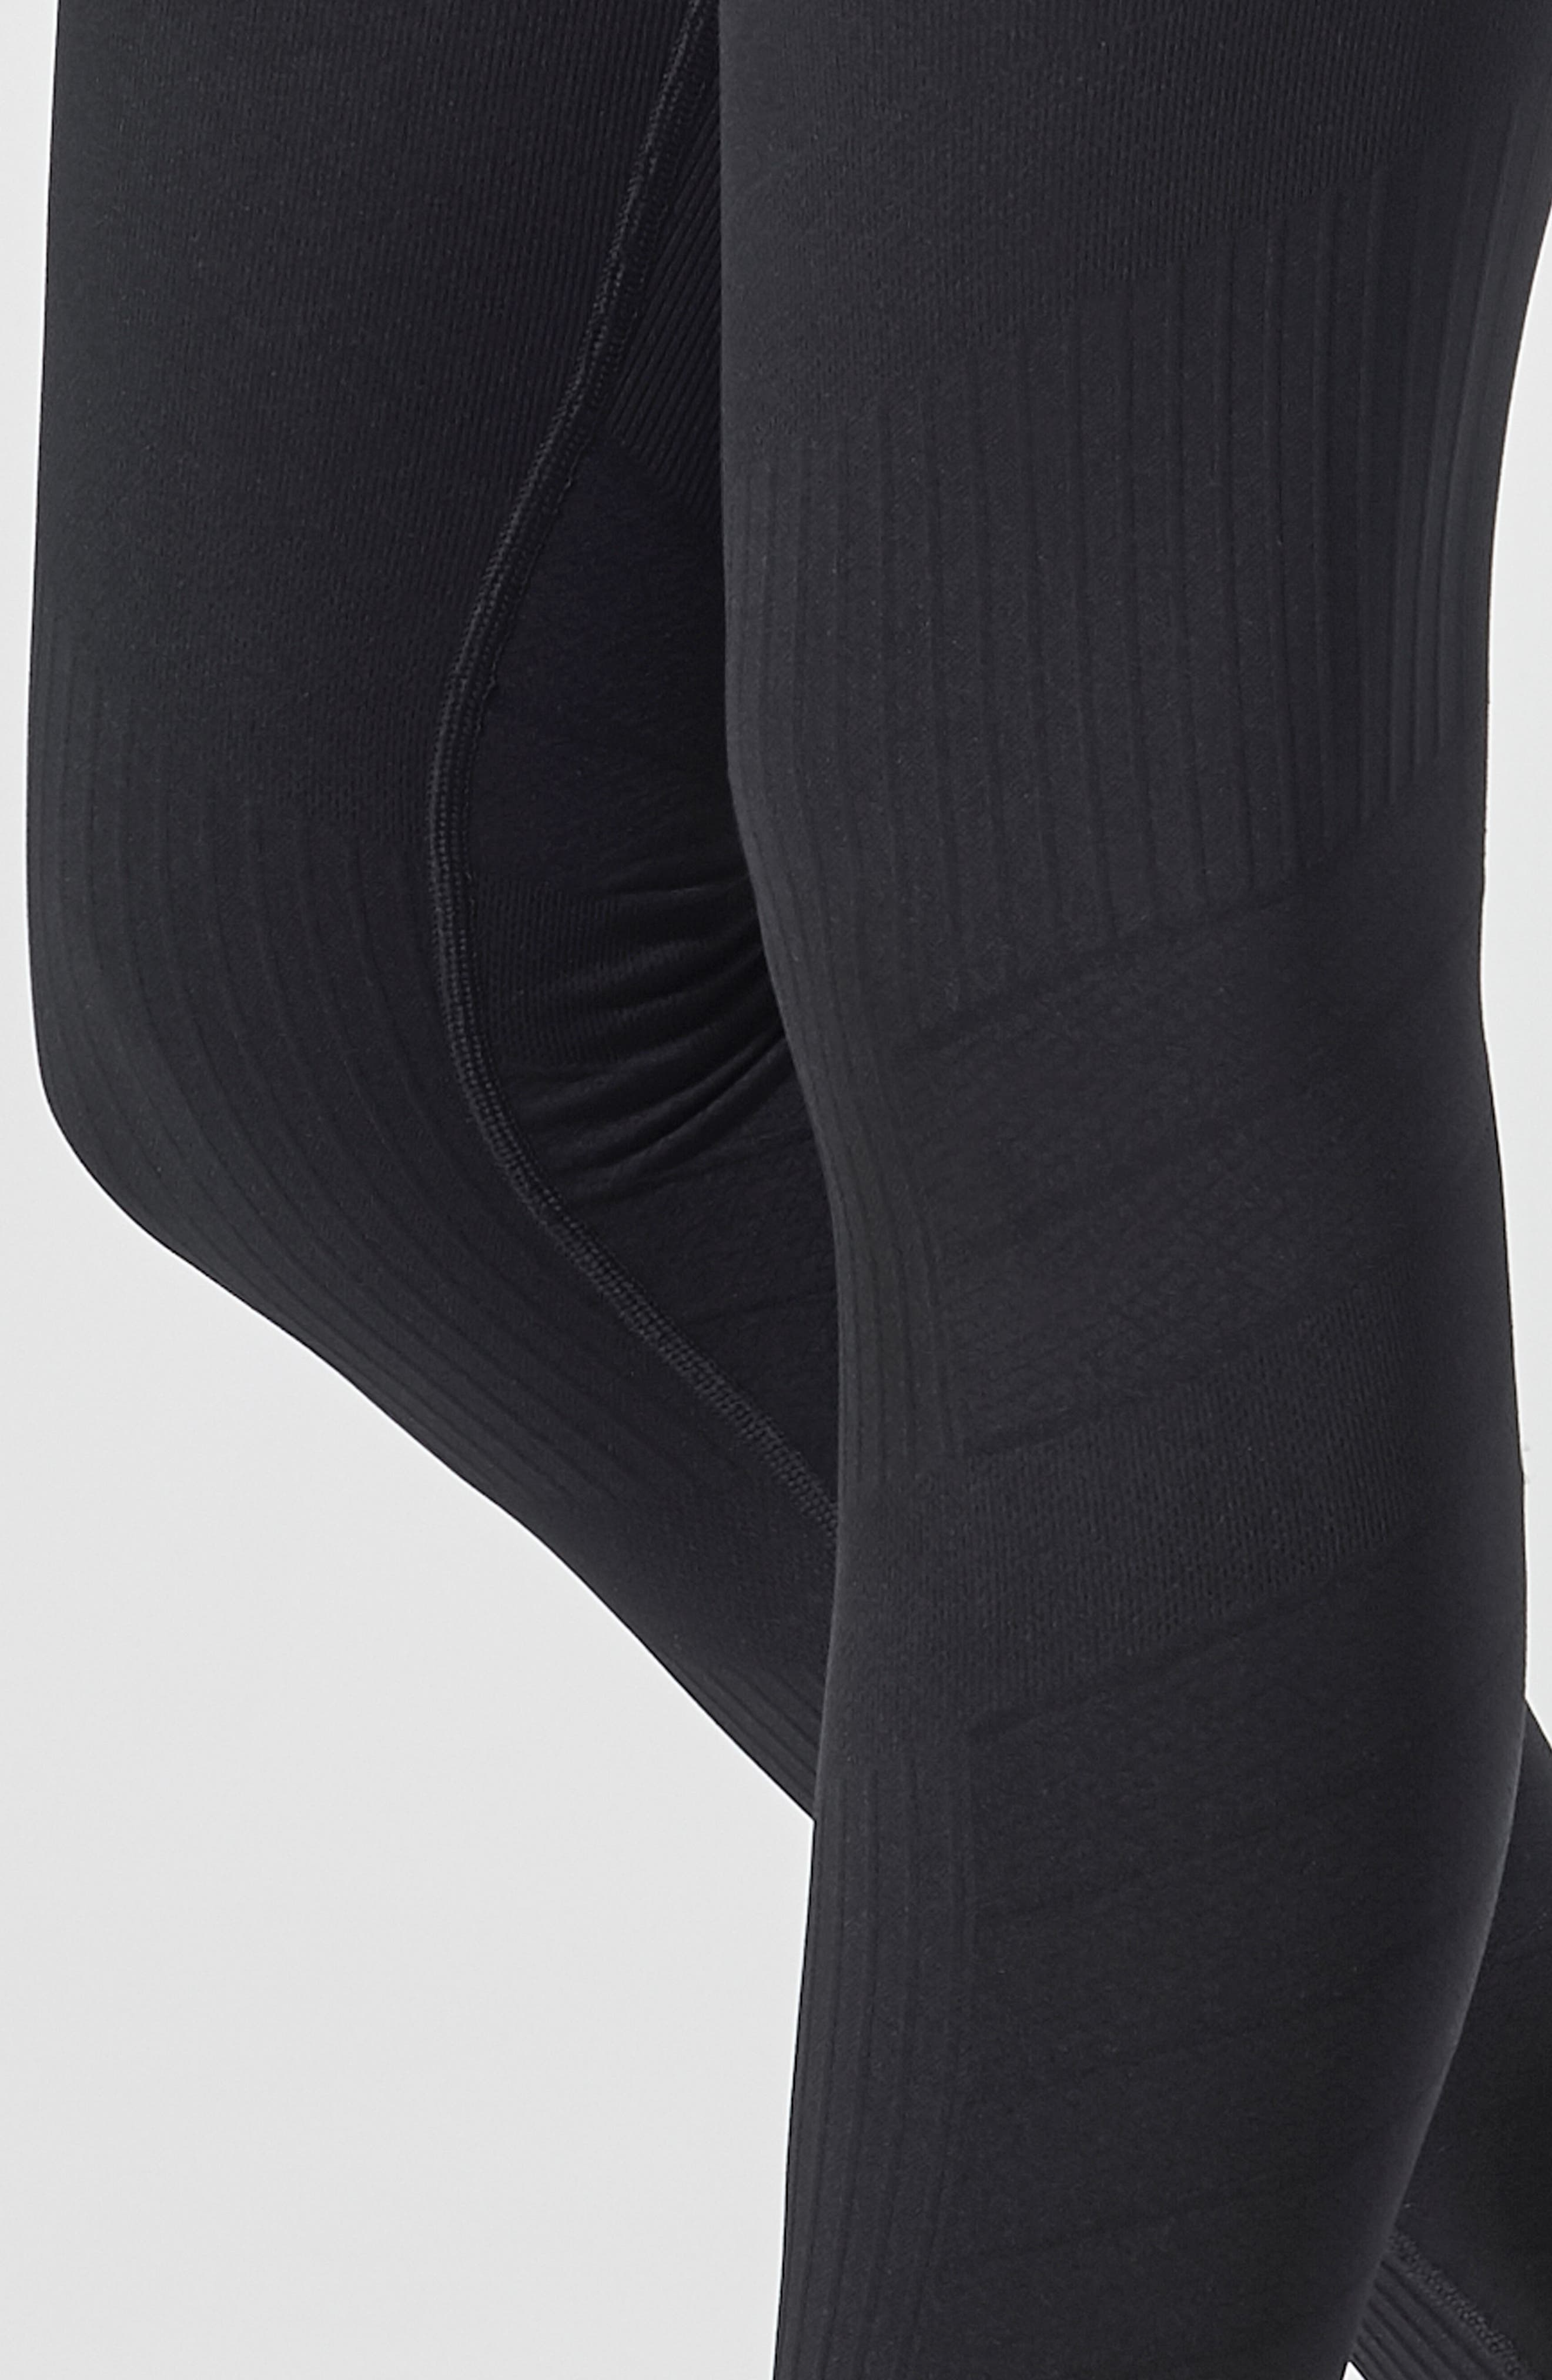 SportSupport<sup>®</sup> Hipster Contour Support Maternity/Postpartum Leggings,                             Alternate thumbnail 5, color,                             BLACK